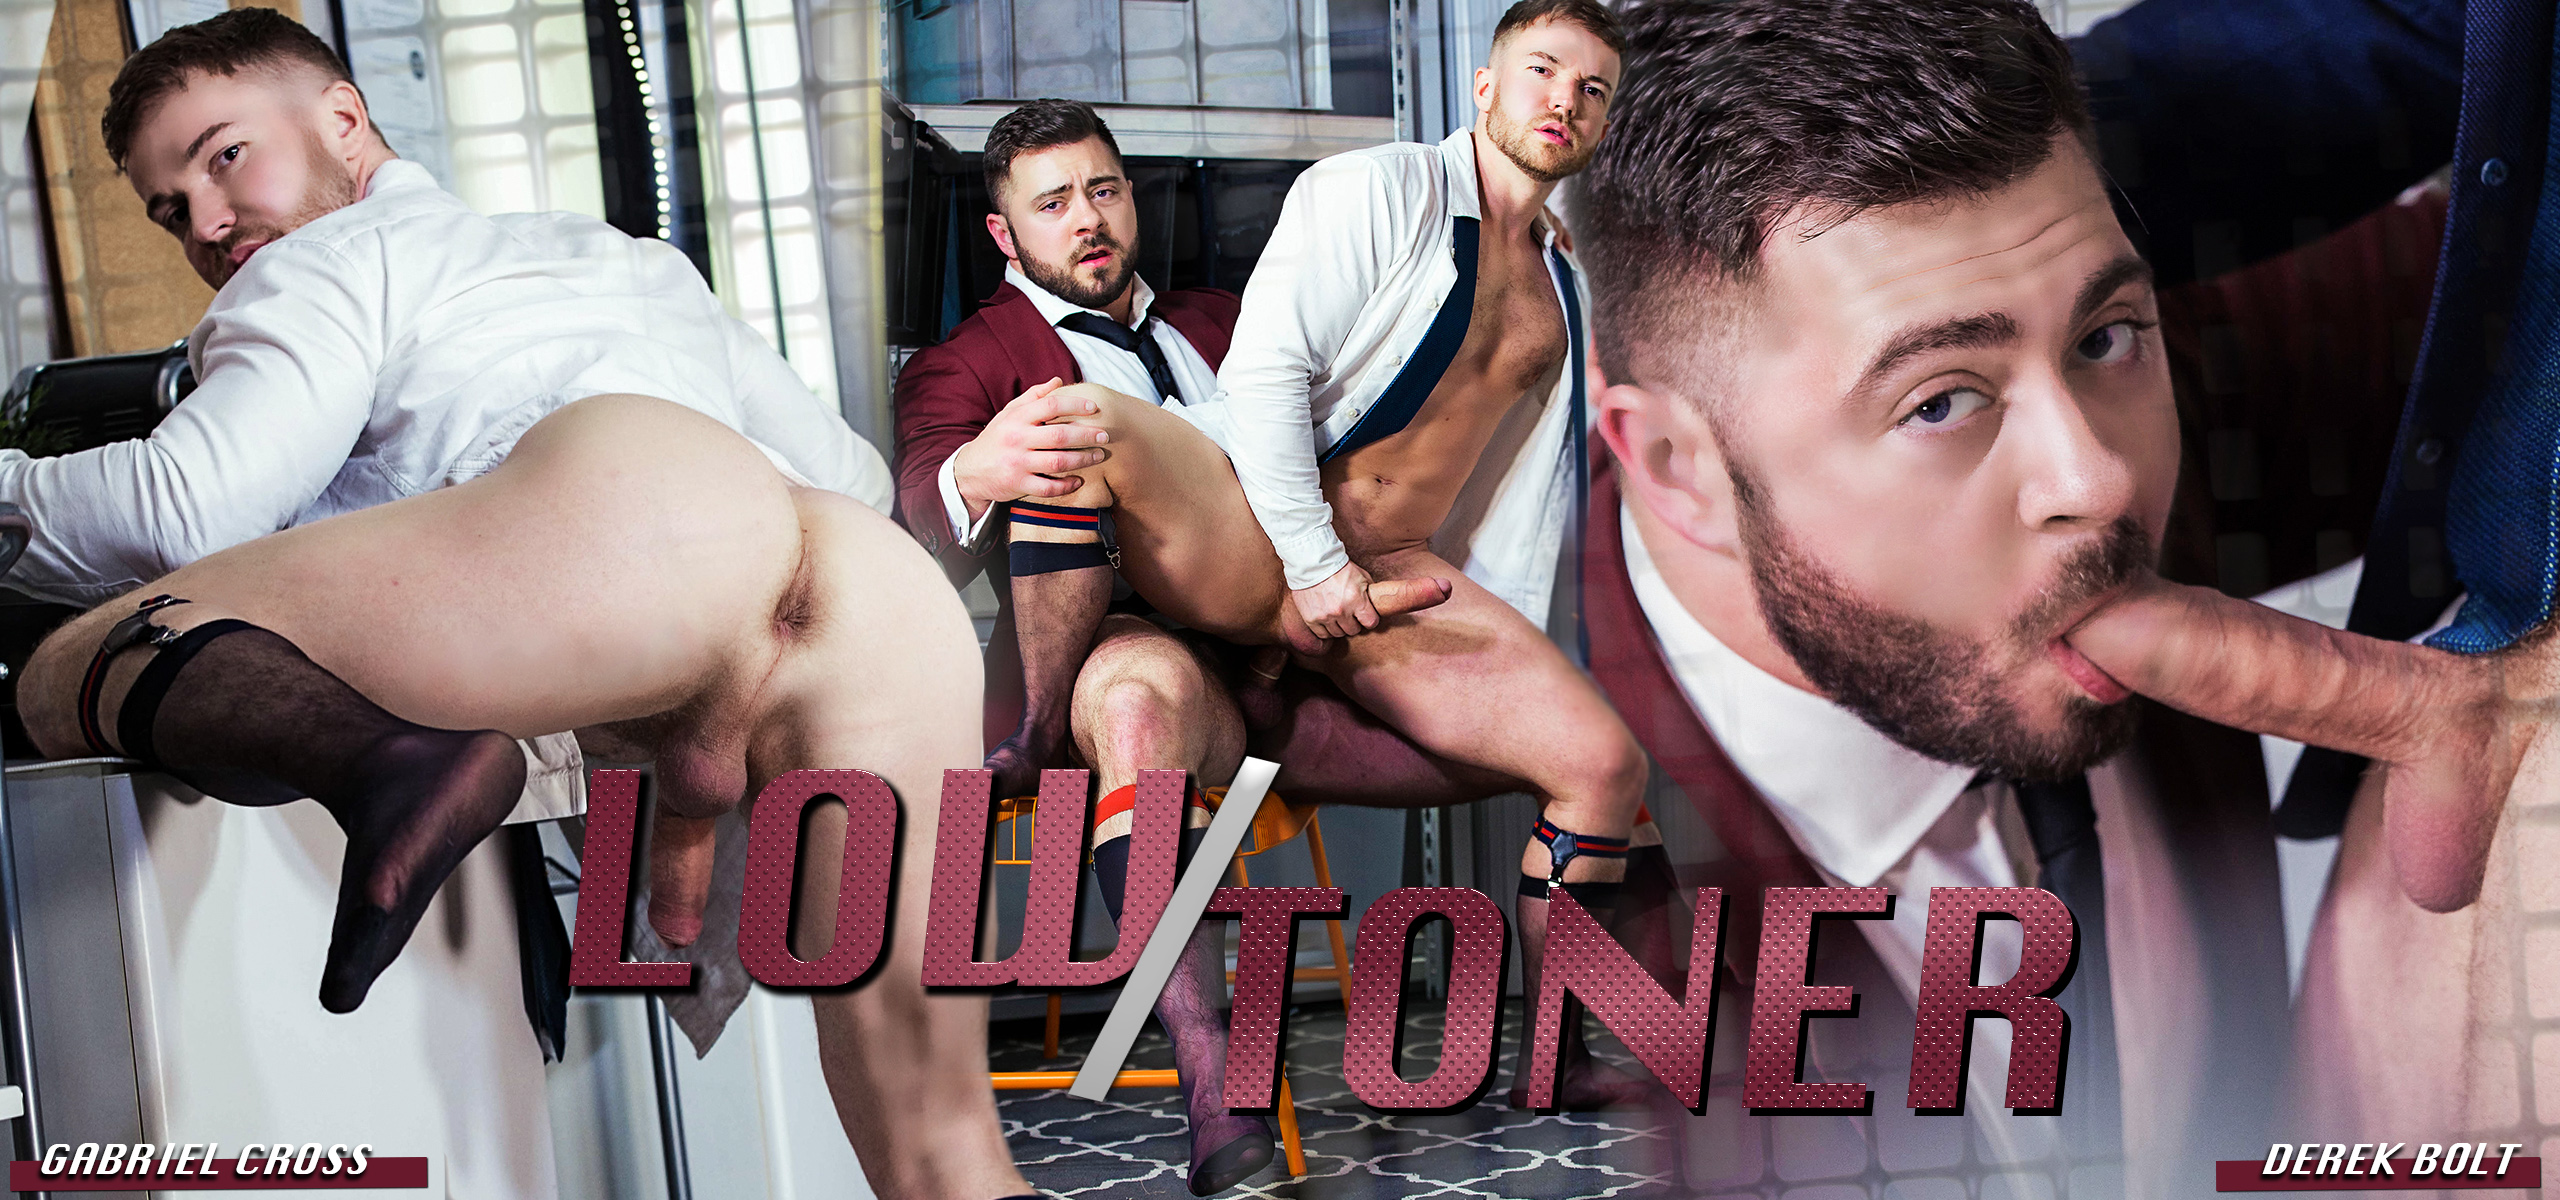 Men at Play Low Toner Starring Derek Bolt and Gabriel Cross